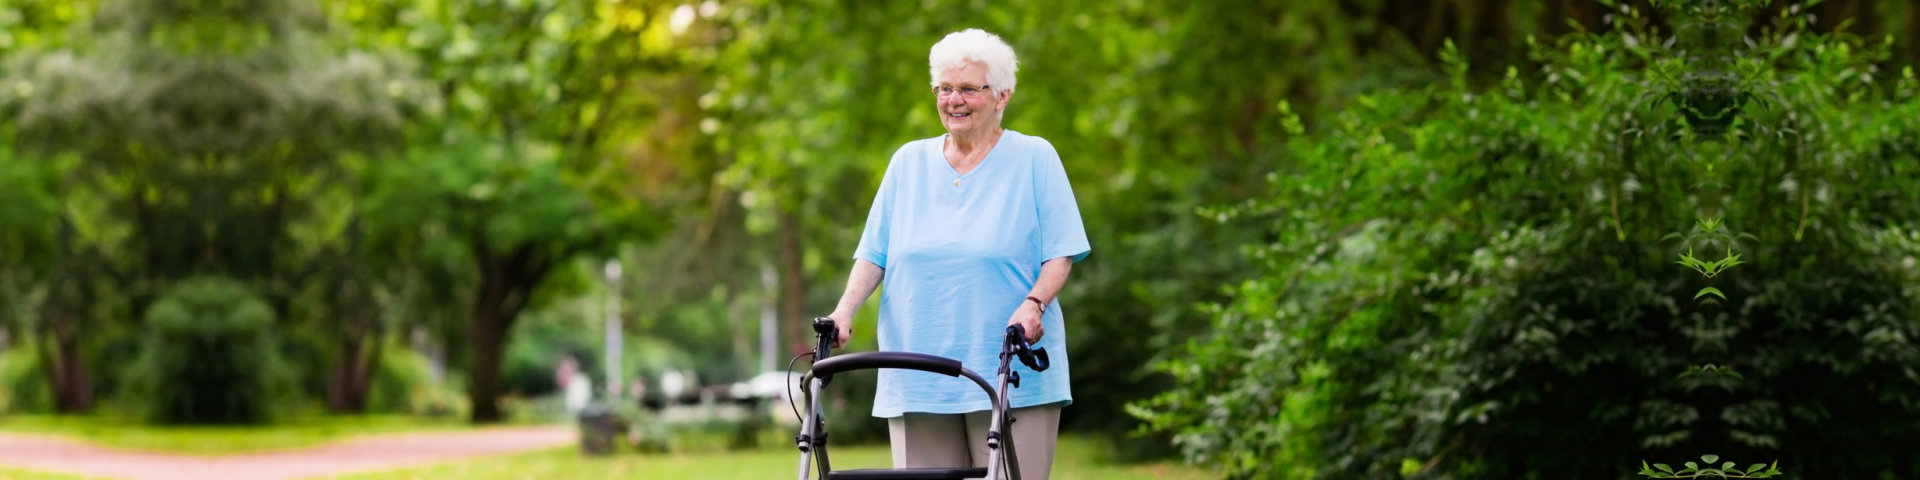 senior handicapped lady with a walking disability enjoying a walk